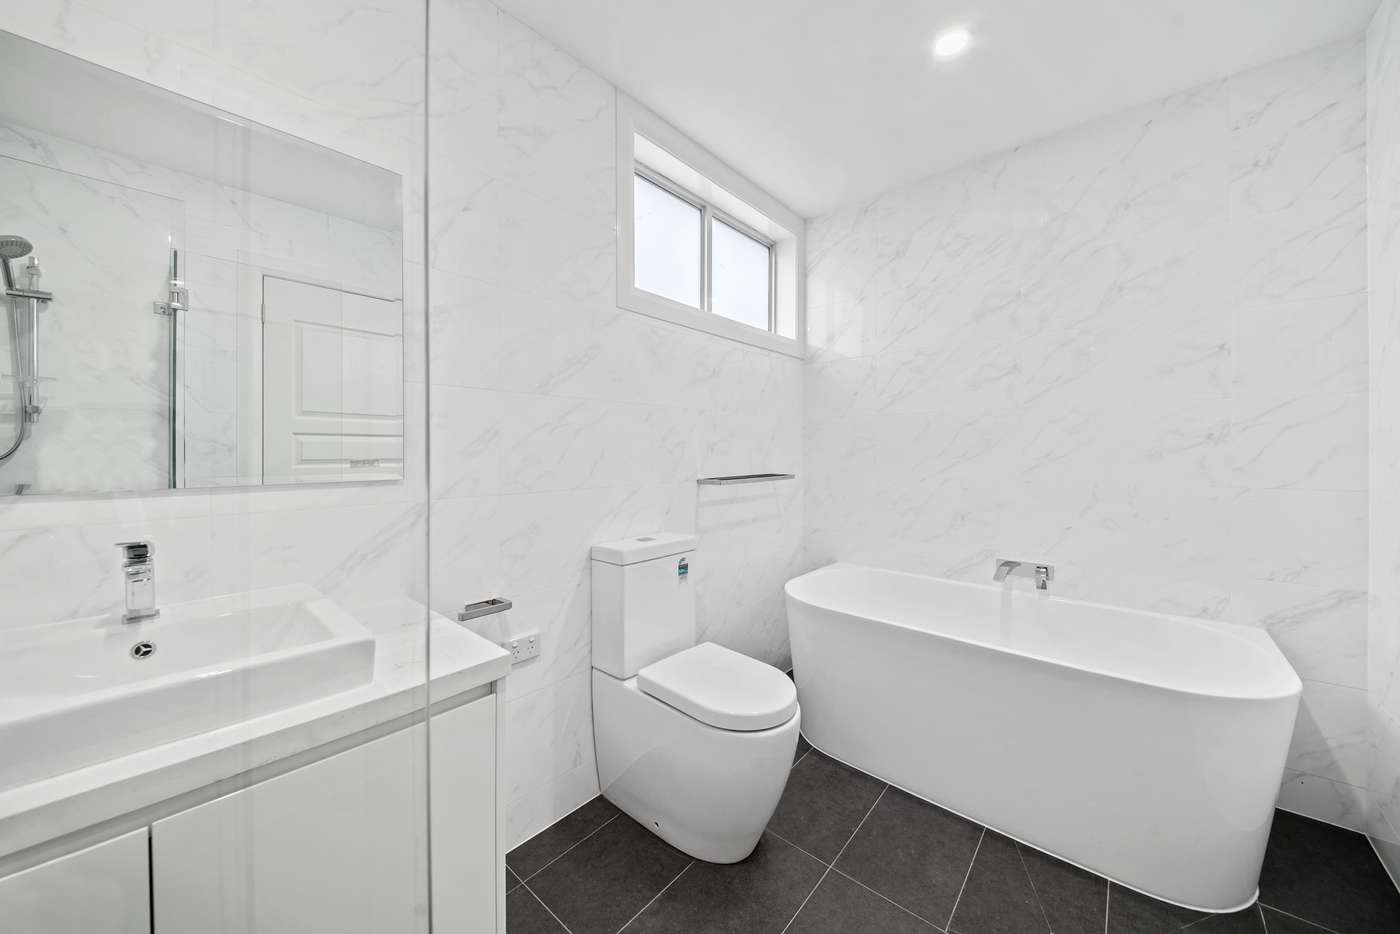 Fifth view of Homely townhouse listing, 23/7-11 College Crescent, St Ives NSW 2075